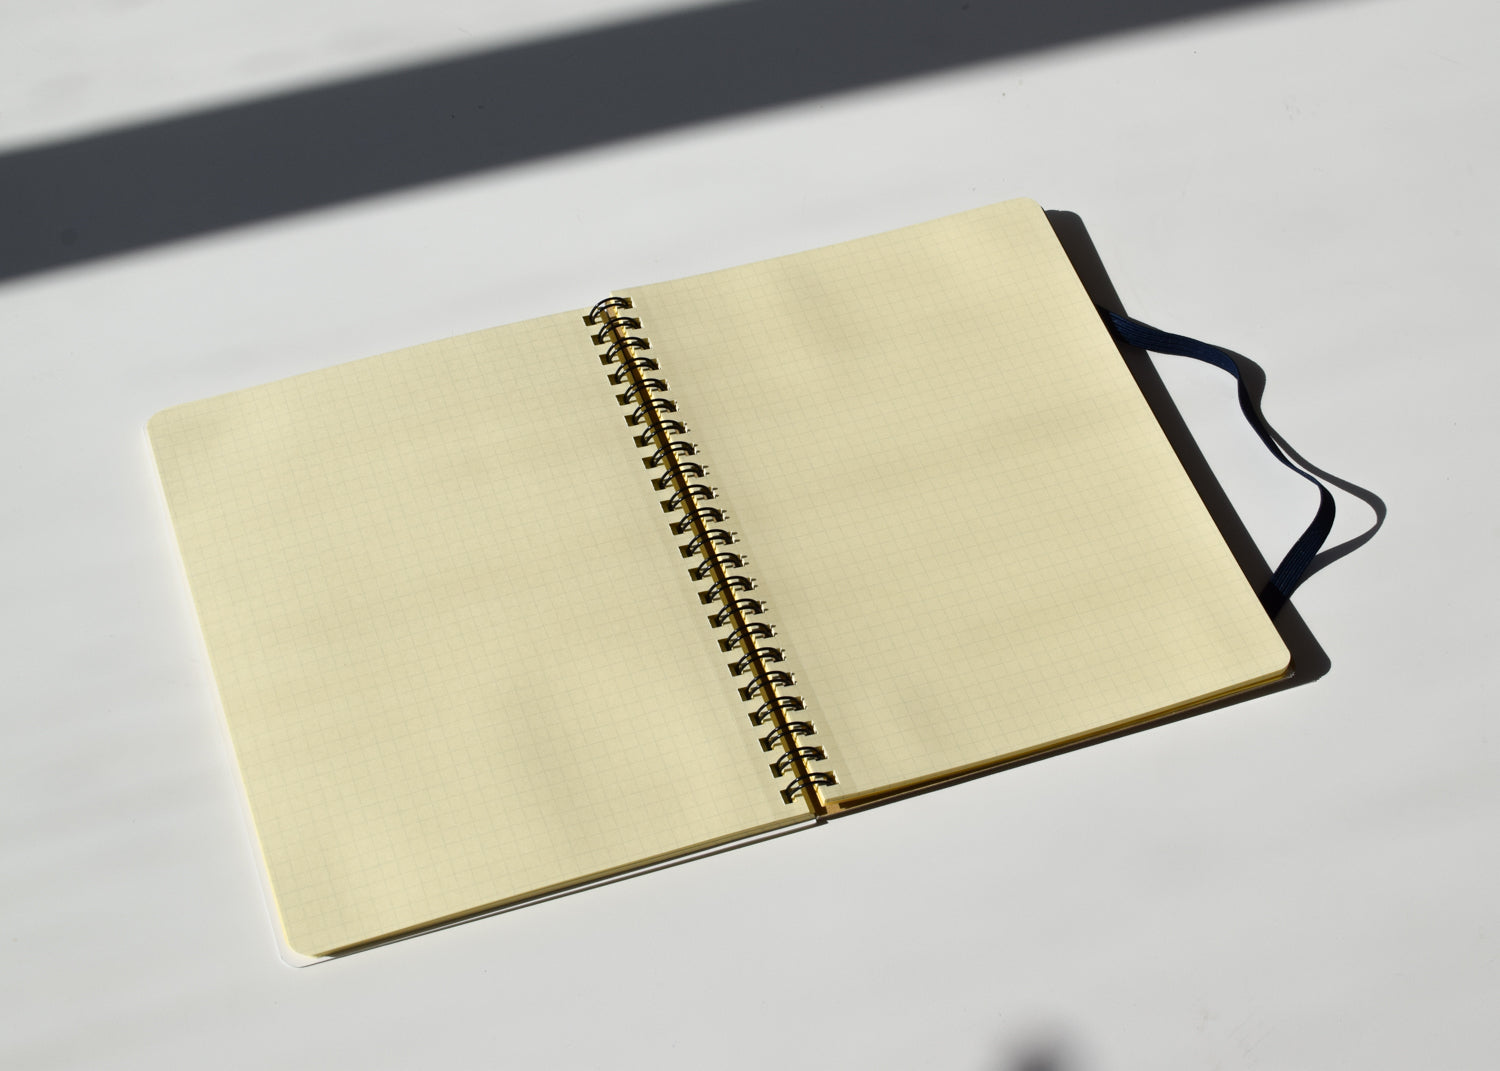 An elastic strap holds together the Rollbahn Spiral Notebook from Delfonics.